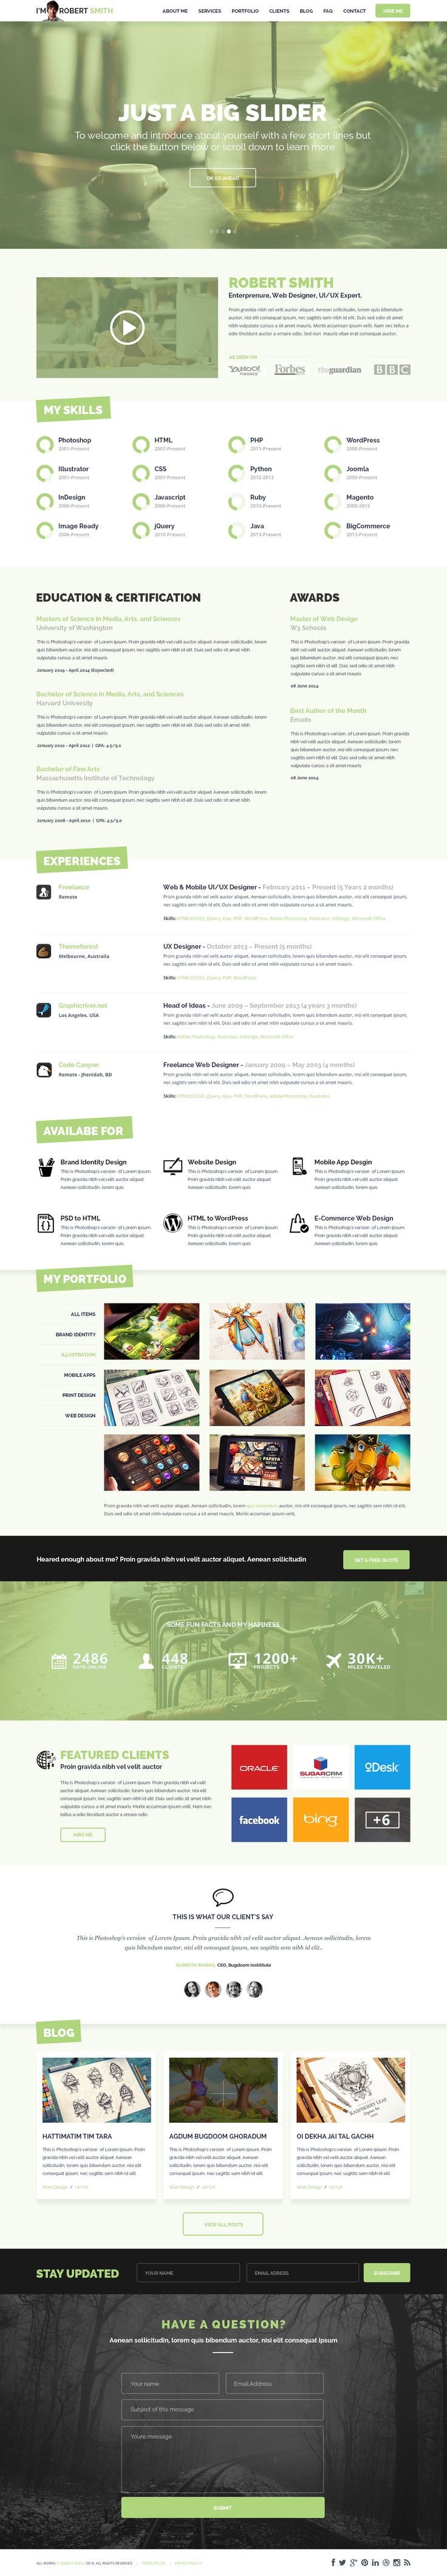 best ideas about best cv formats best resume awesome one page resume website hi friends look what i have just discovered on feel to follow us moirestudiosjkt to see more excellent pins like